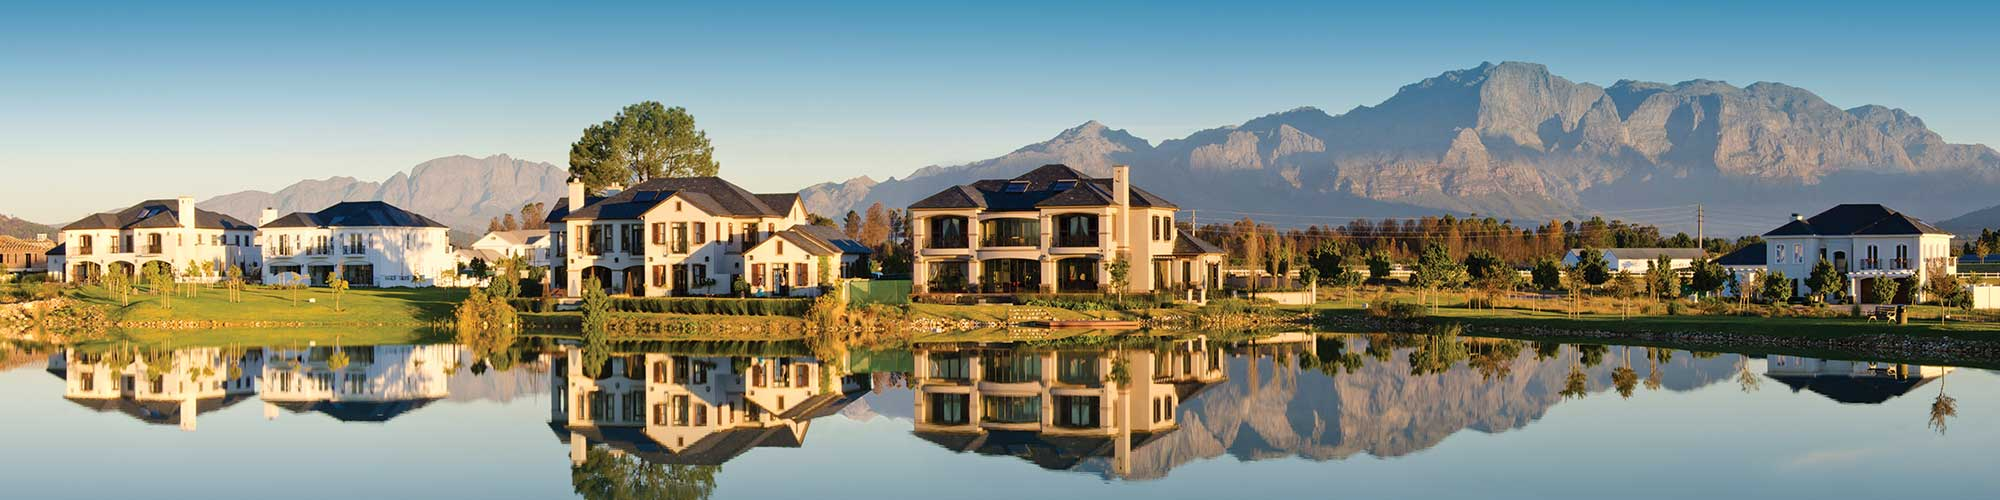 bergstreme-home-builders-paarl-val-de-vie-house-panoramic.jpg